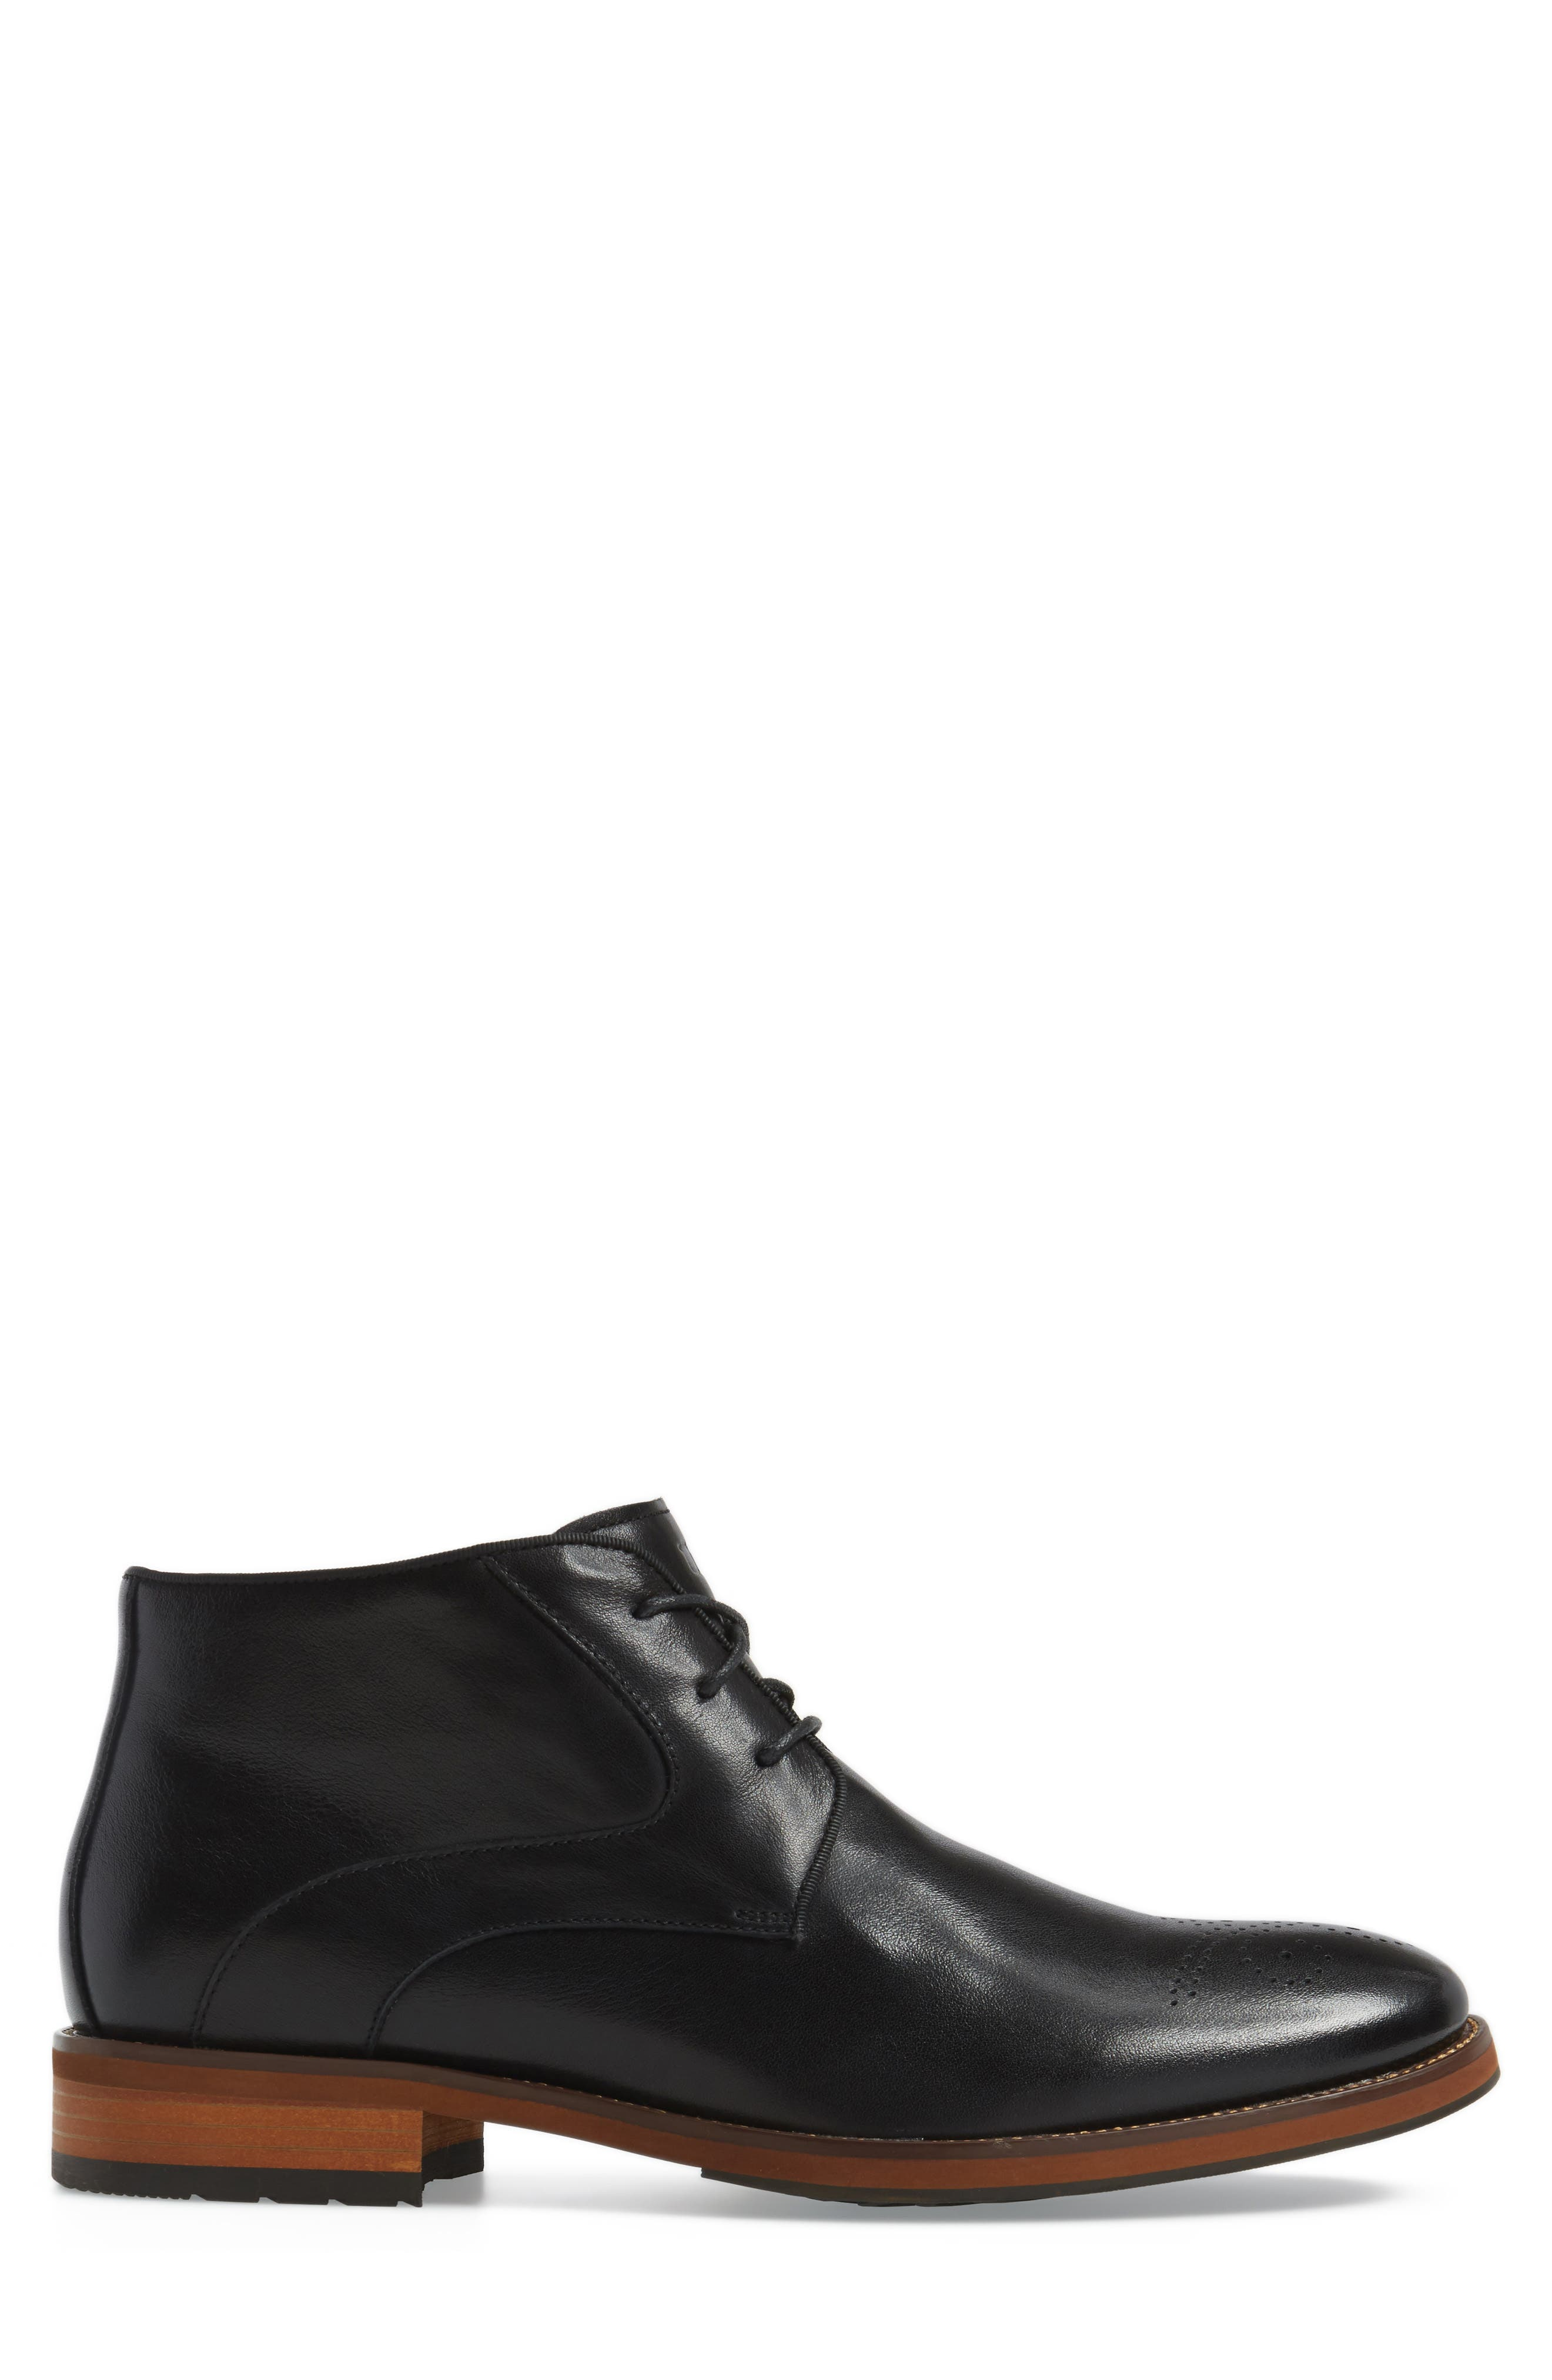 Blaze Chukka Boot,                             Alternate thumbnail 3, color,                             BLACK LEATHER